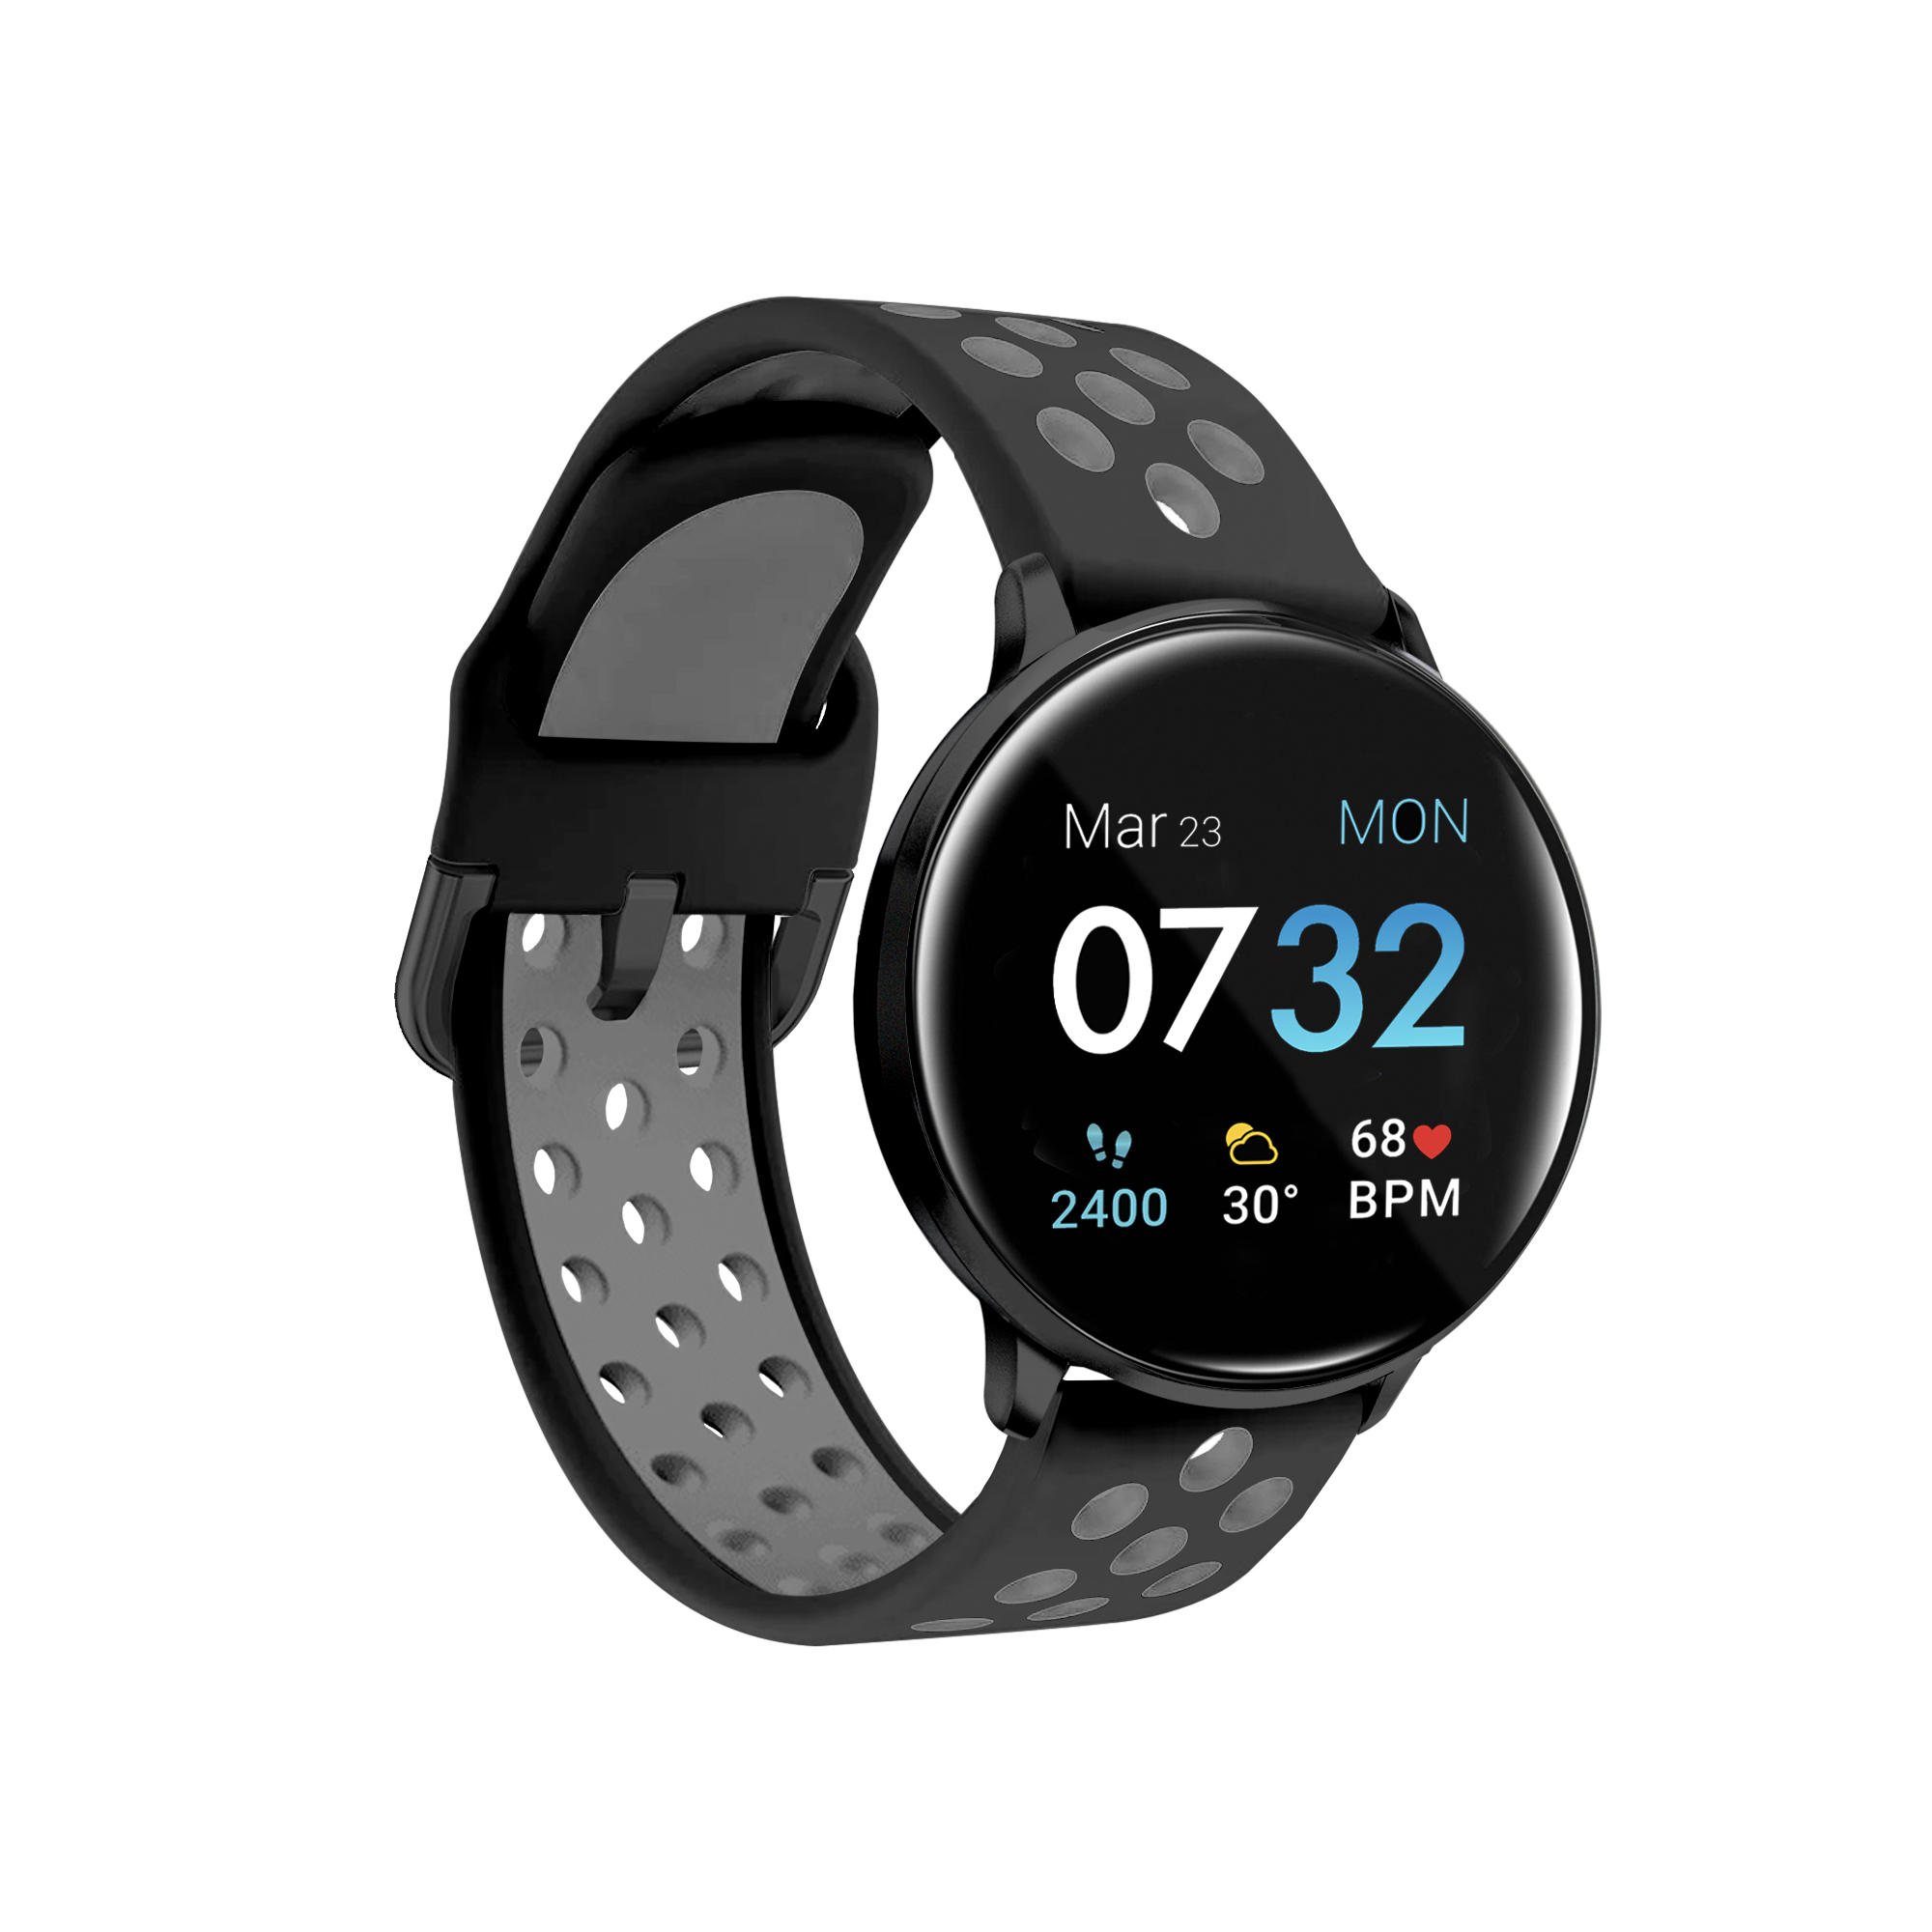 iTouch - iTouch Sport 2 Smartwatch: Black Case with Black